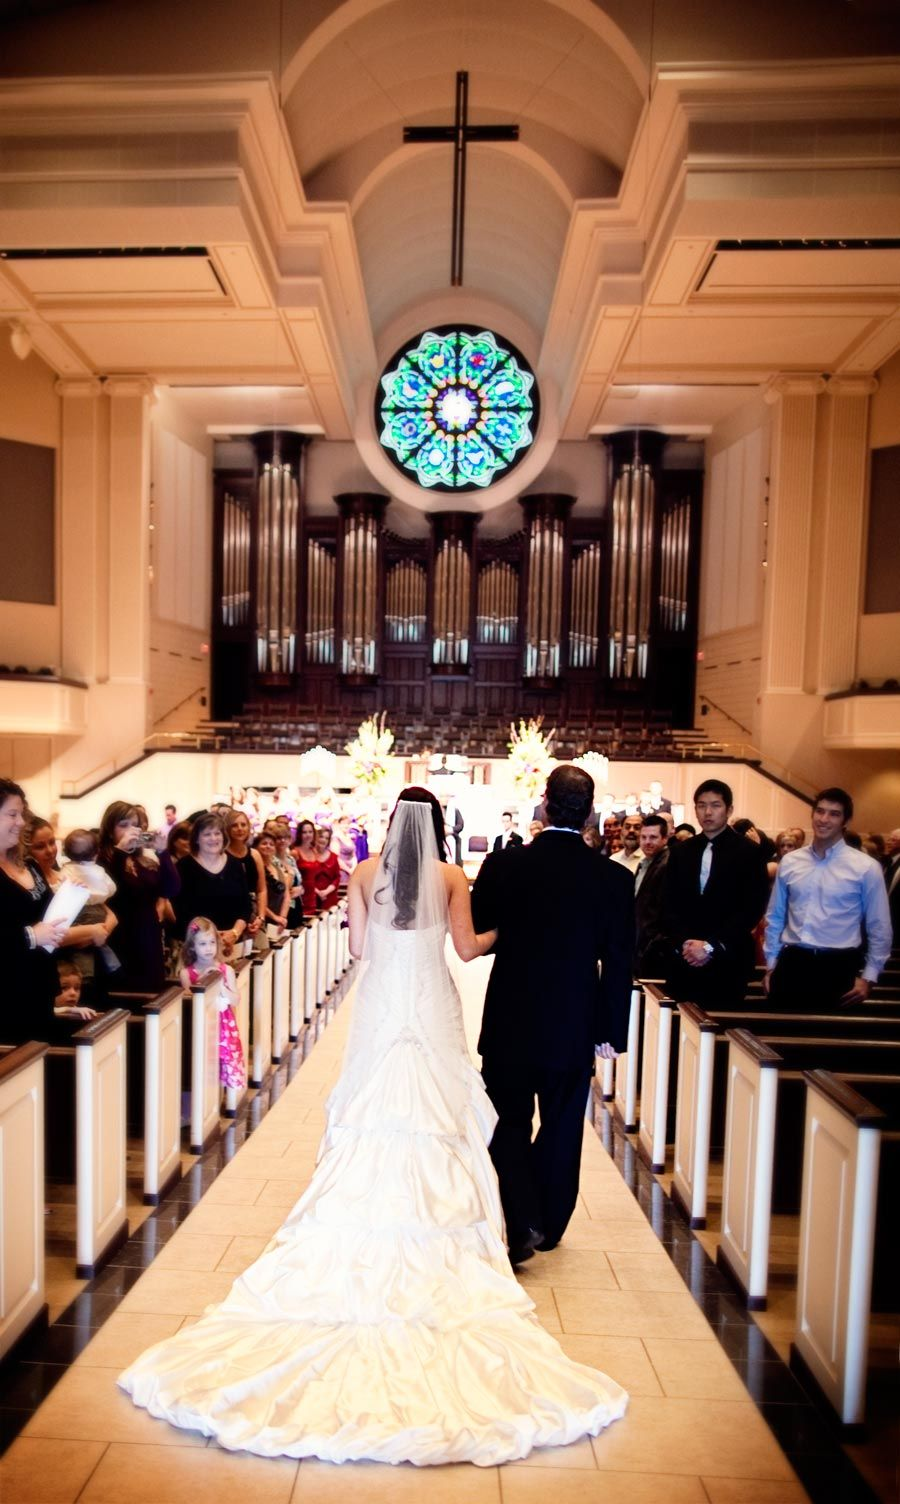 St Andrews UMC Plano Now This Is What I Call A Wedding Venue